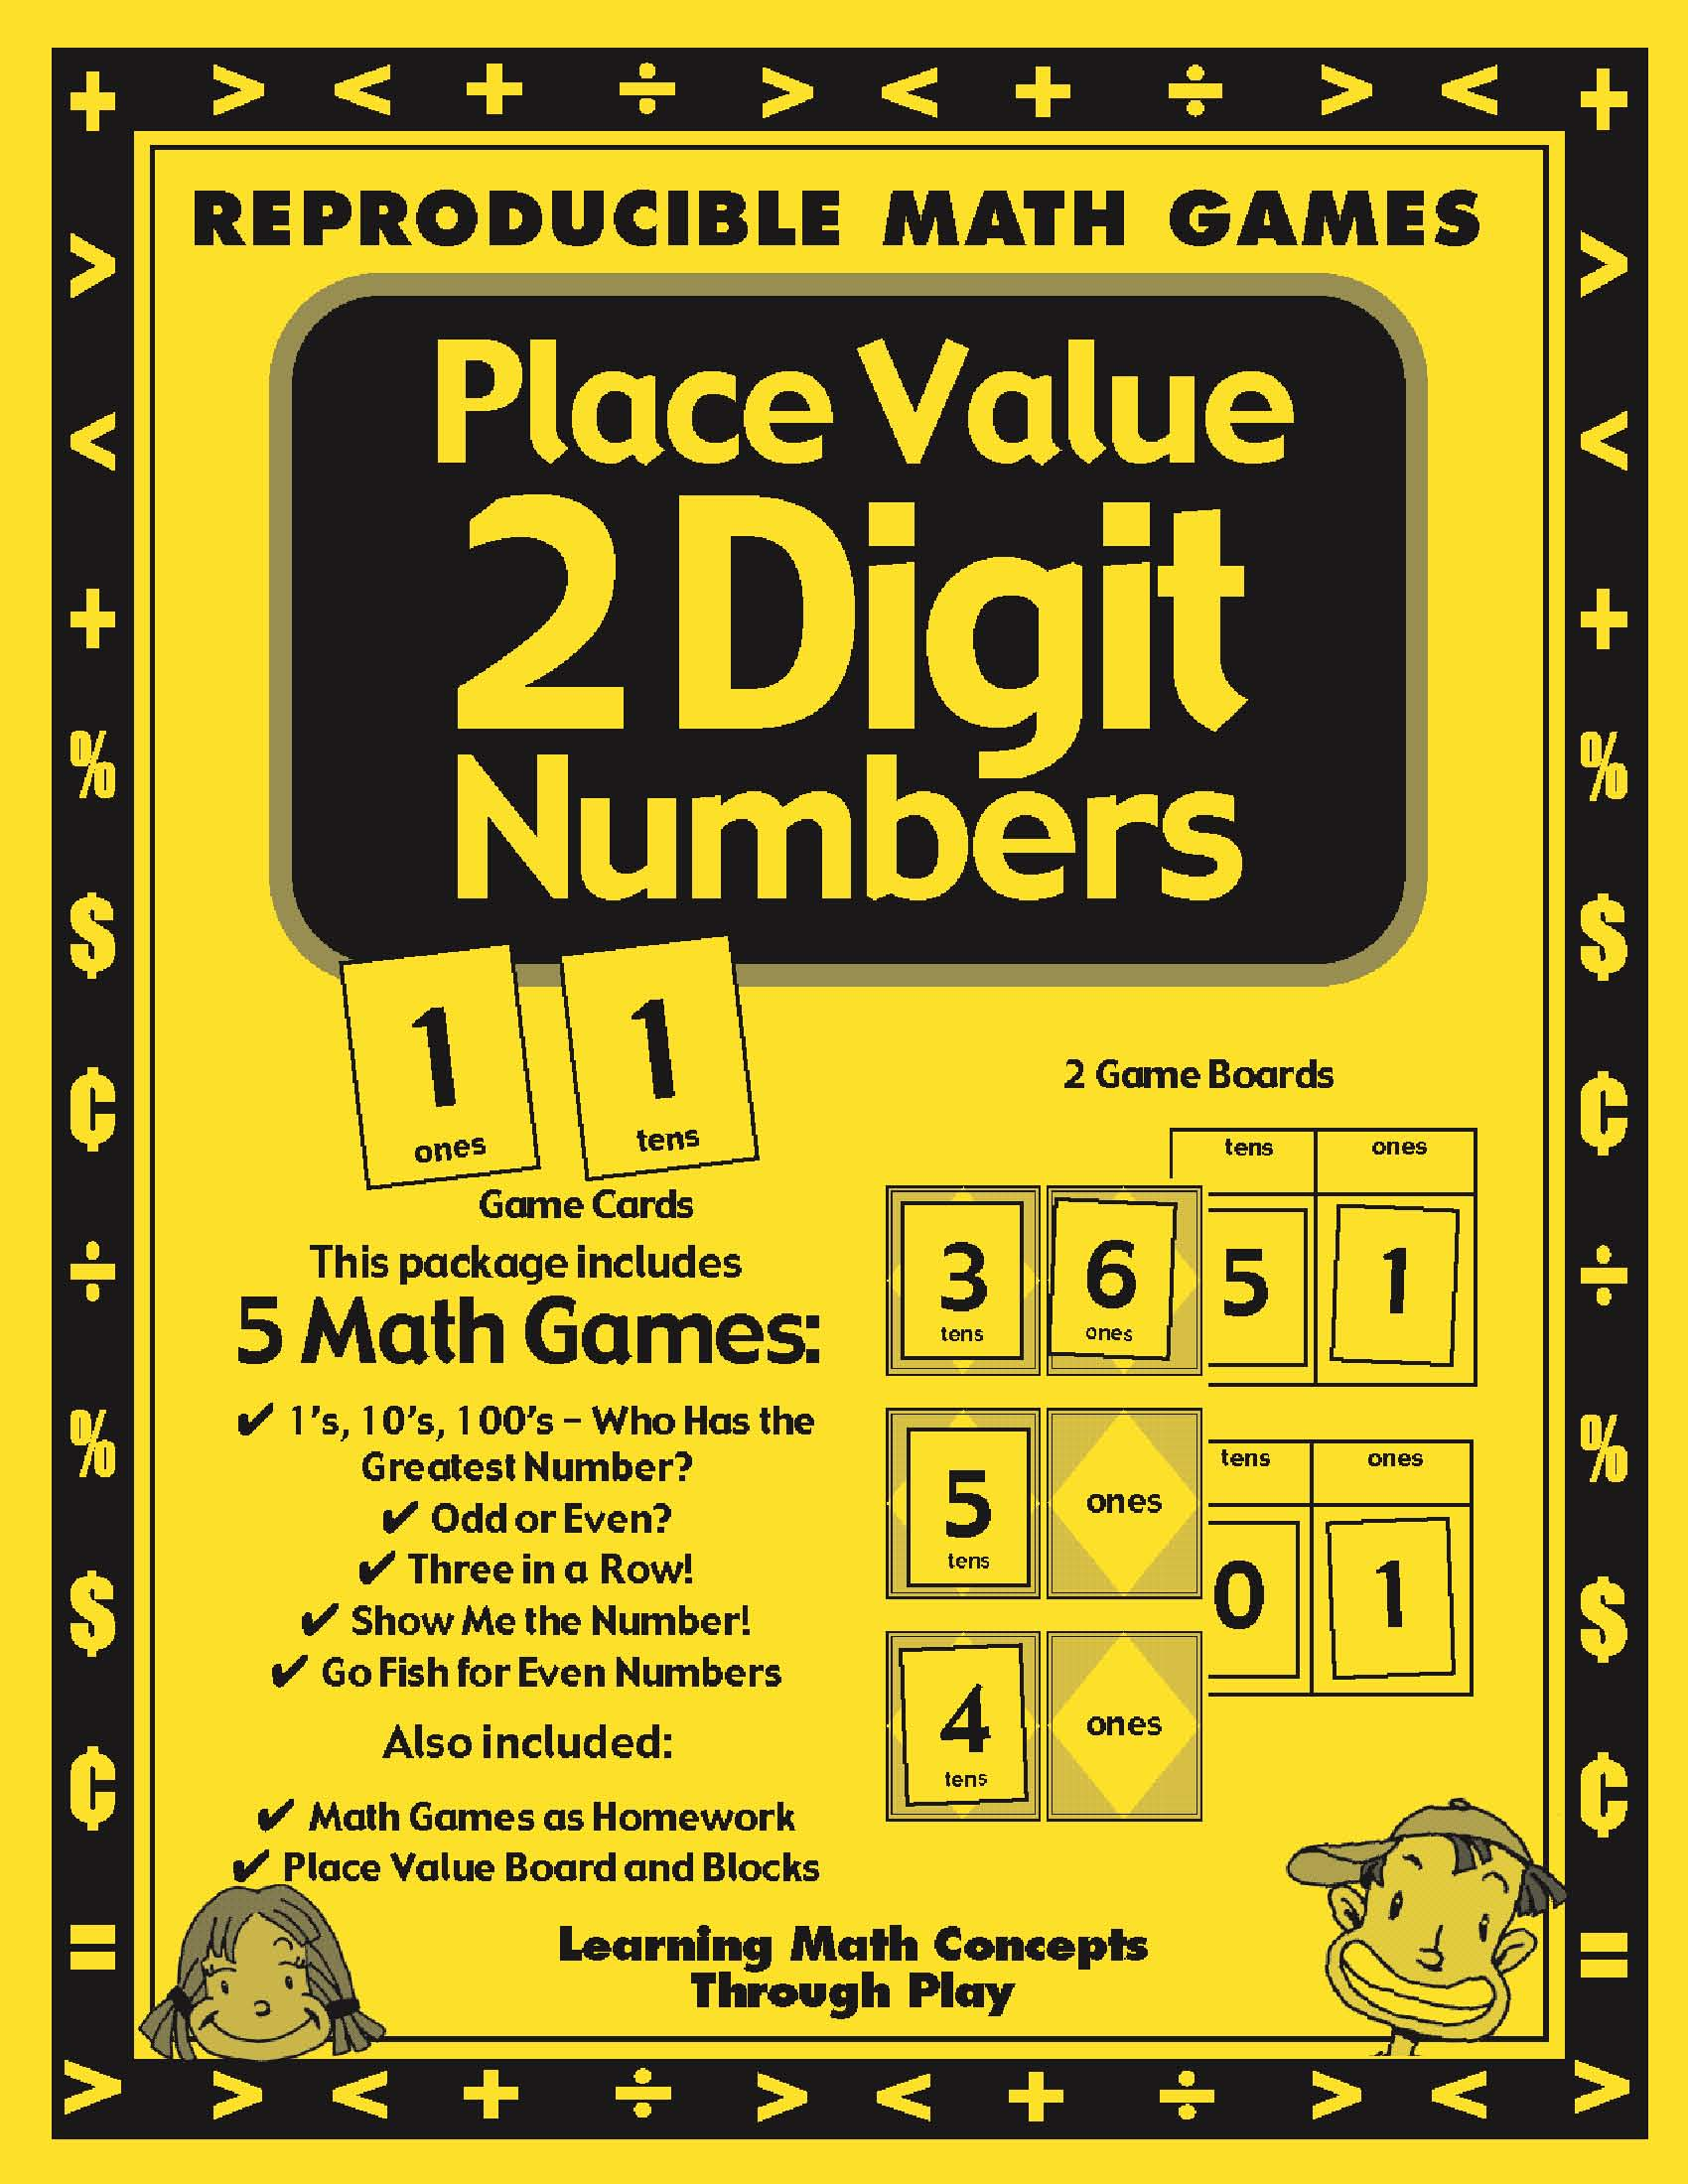 Place Value With 2 Digit Numbers Activities And Lesson